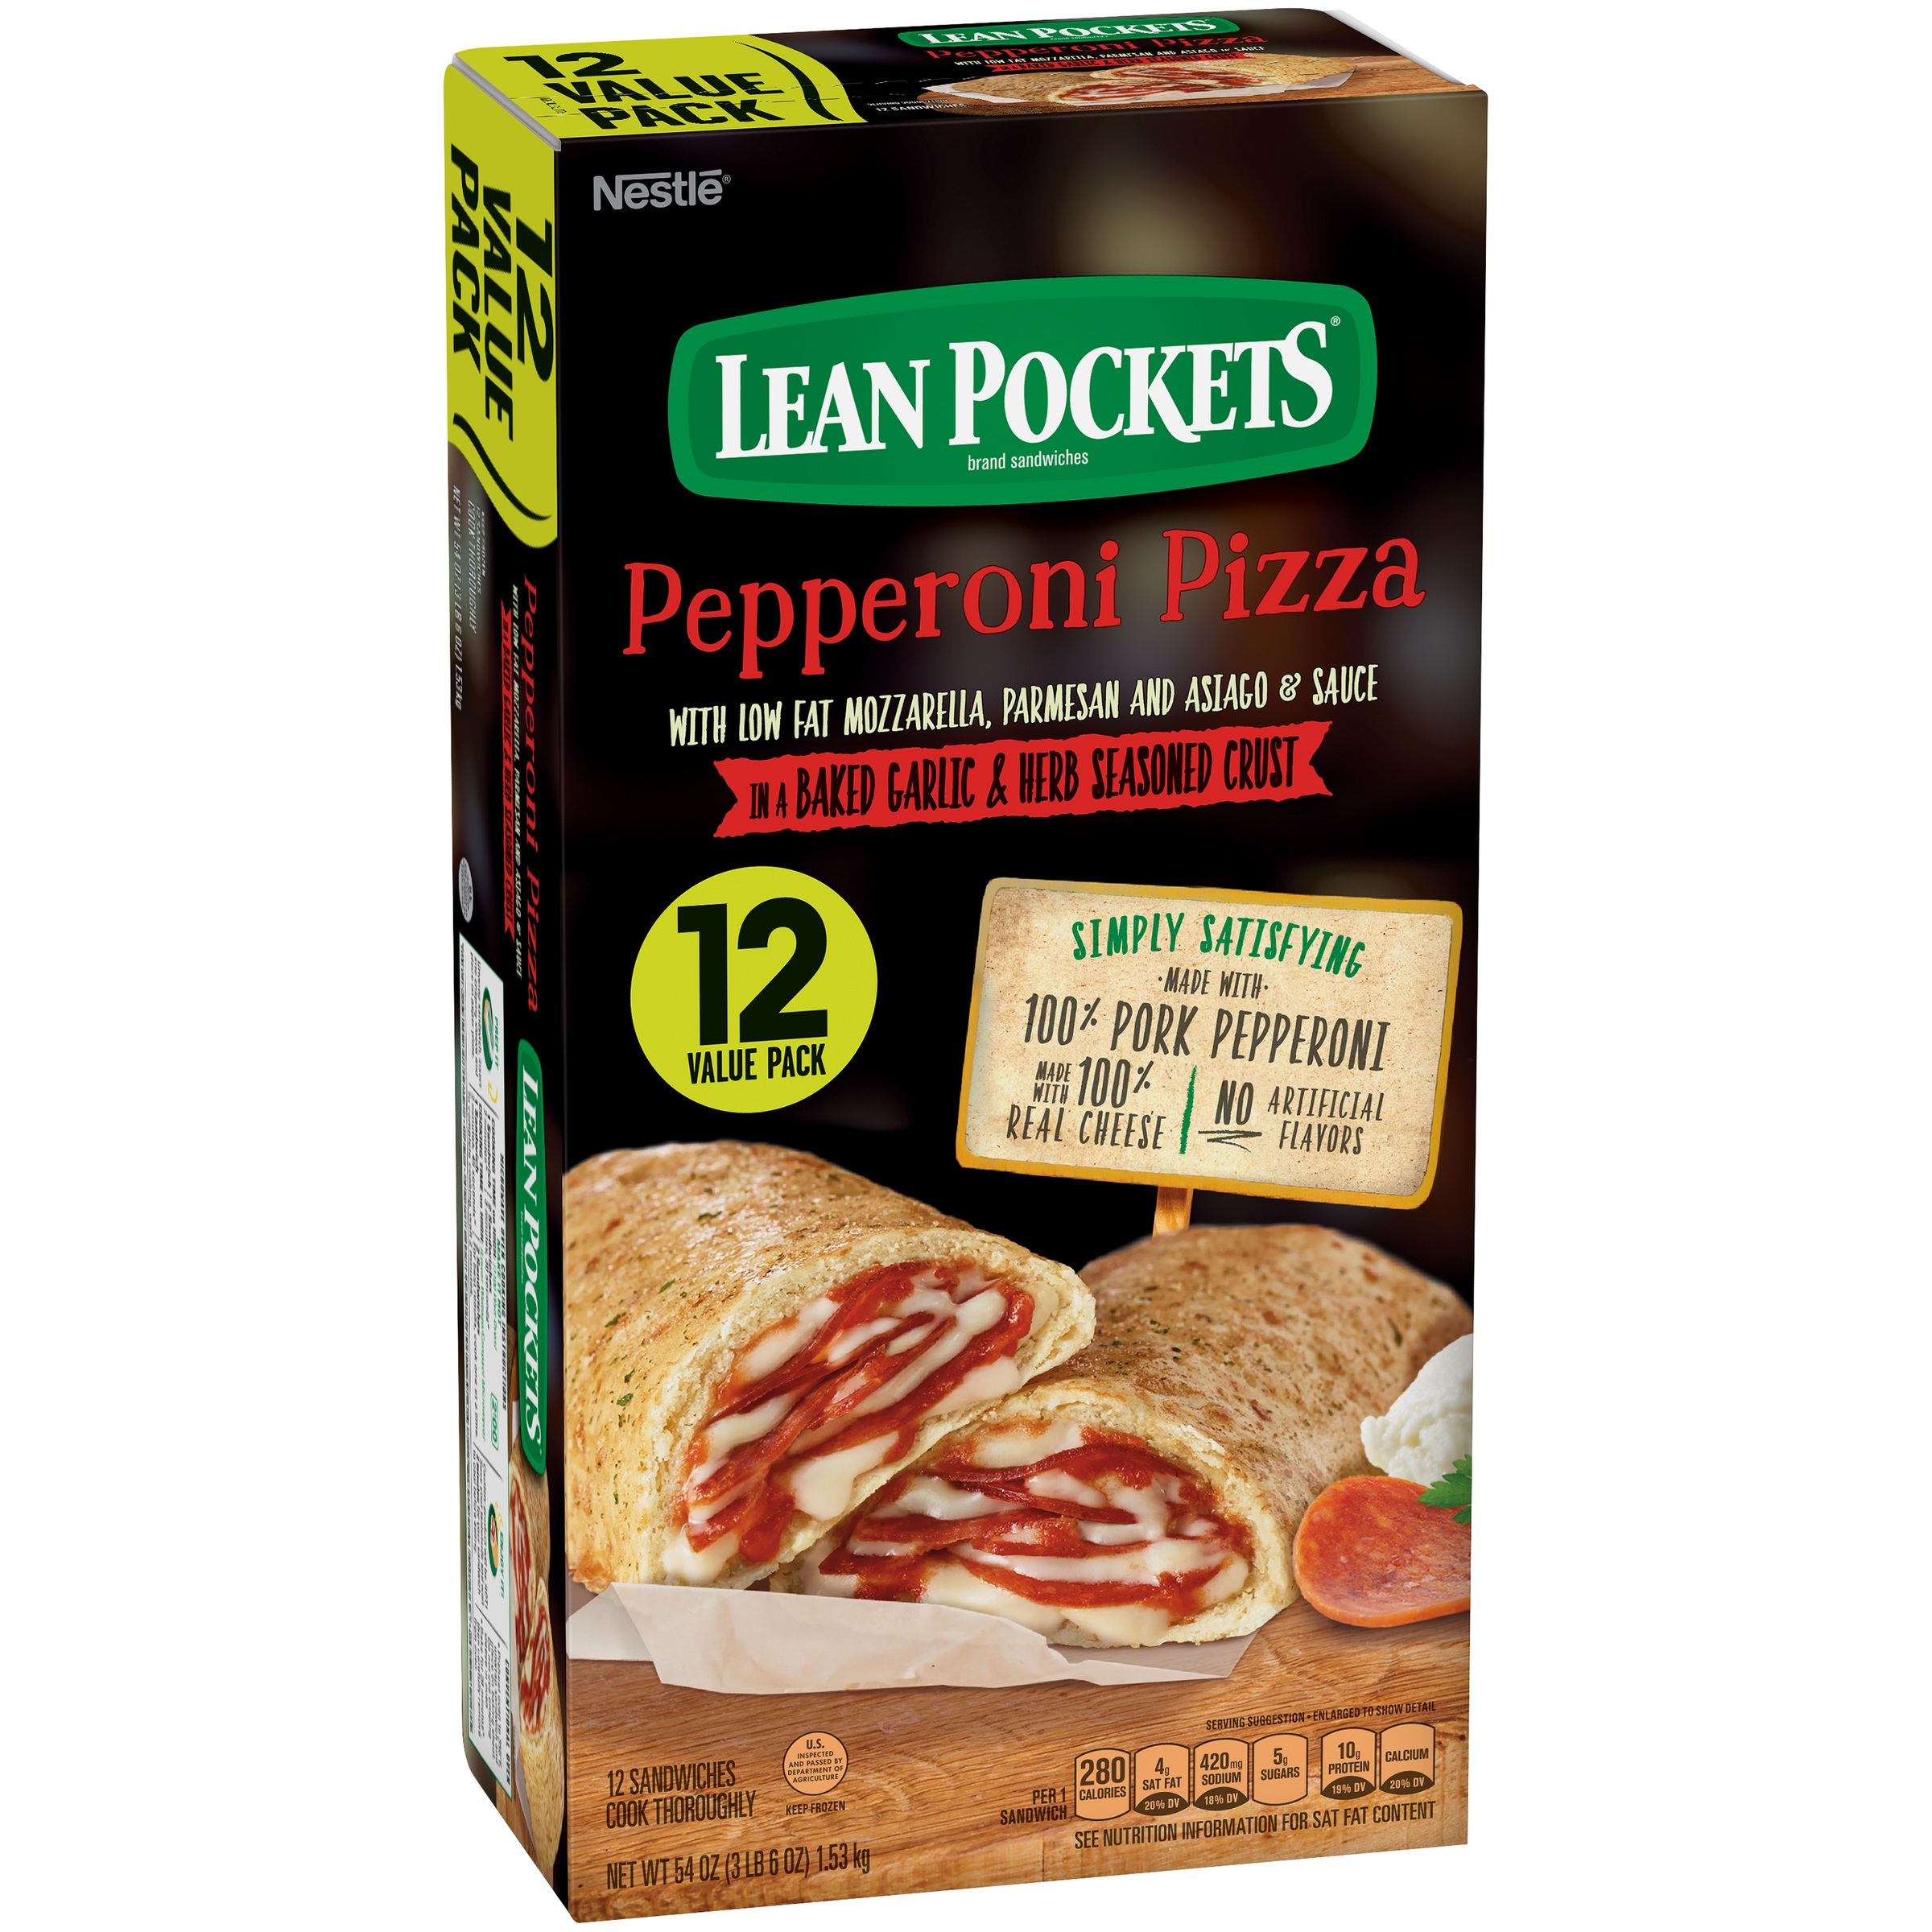 LEAN POCKETS Frozen Sandwiches Pepperoni Pizza 12-Pack